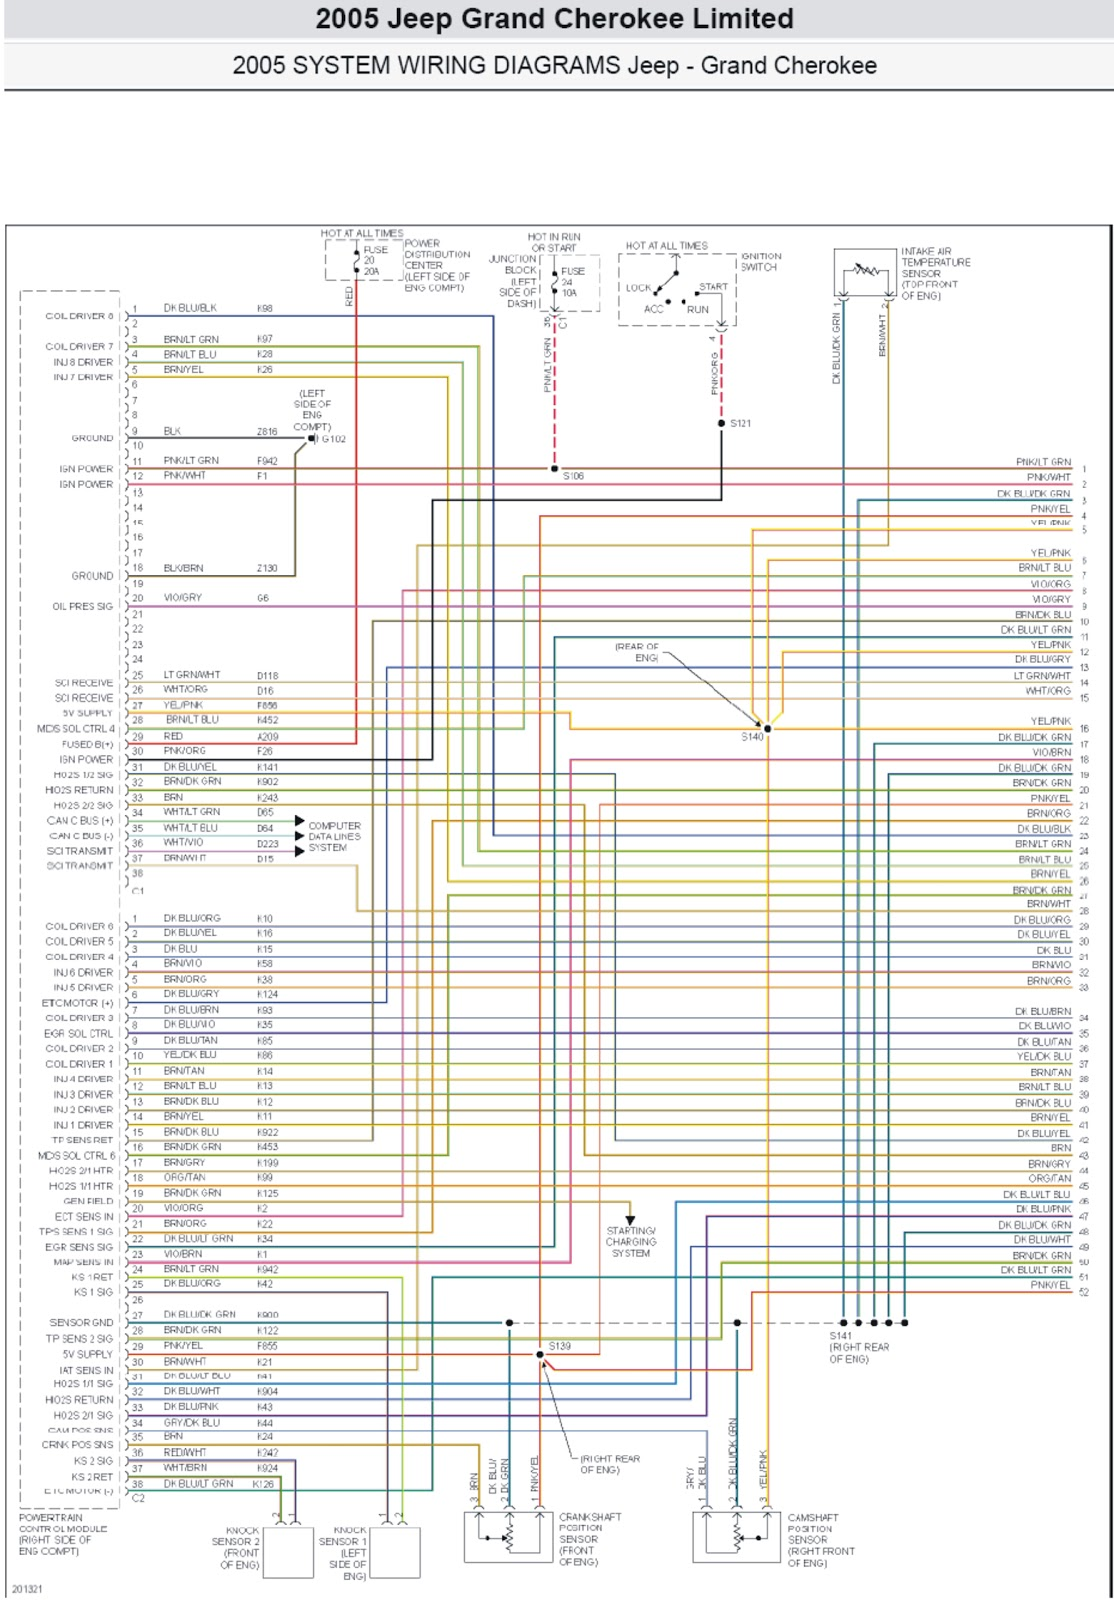 System Wiring Diagrams Jeep Grand Cherokee on 2002 Dodge Durango Parts Diagram